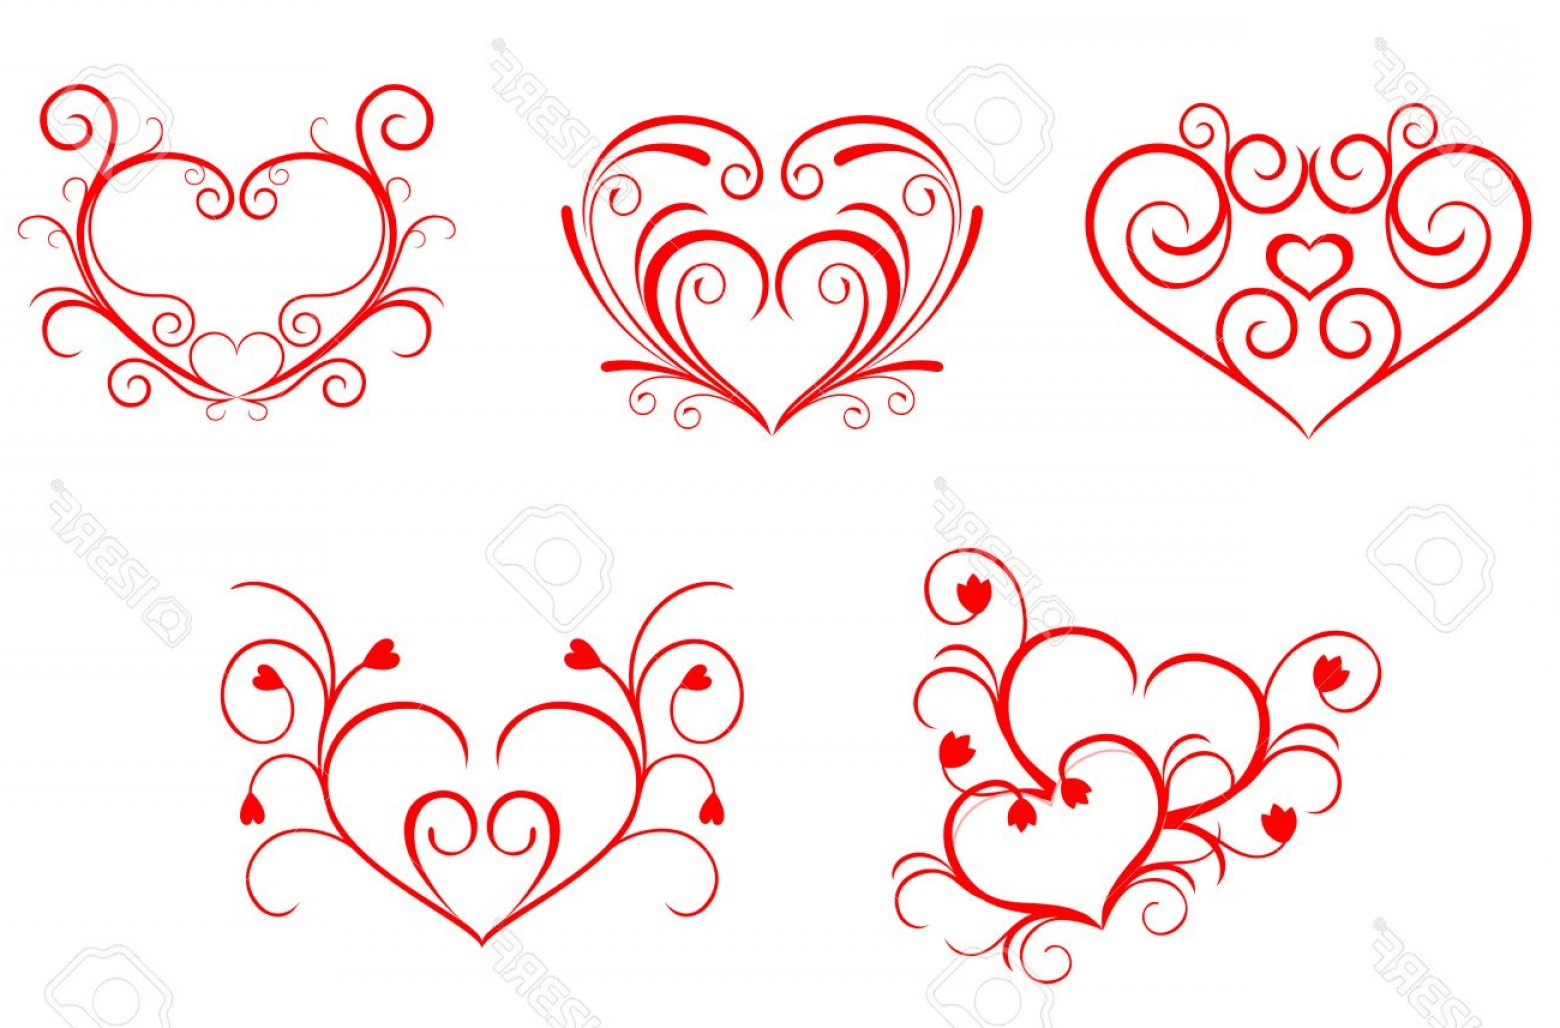 Free Heart Vector Design: Photored Valentine Hearts In Floral Style For Design